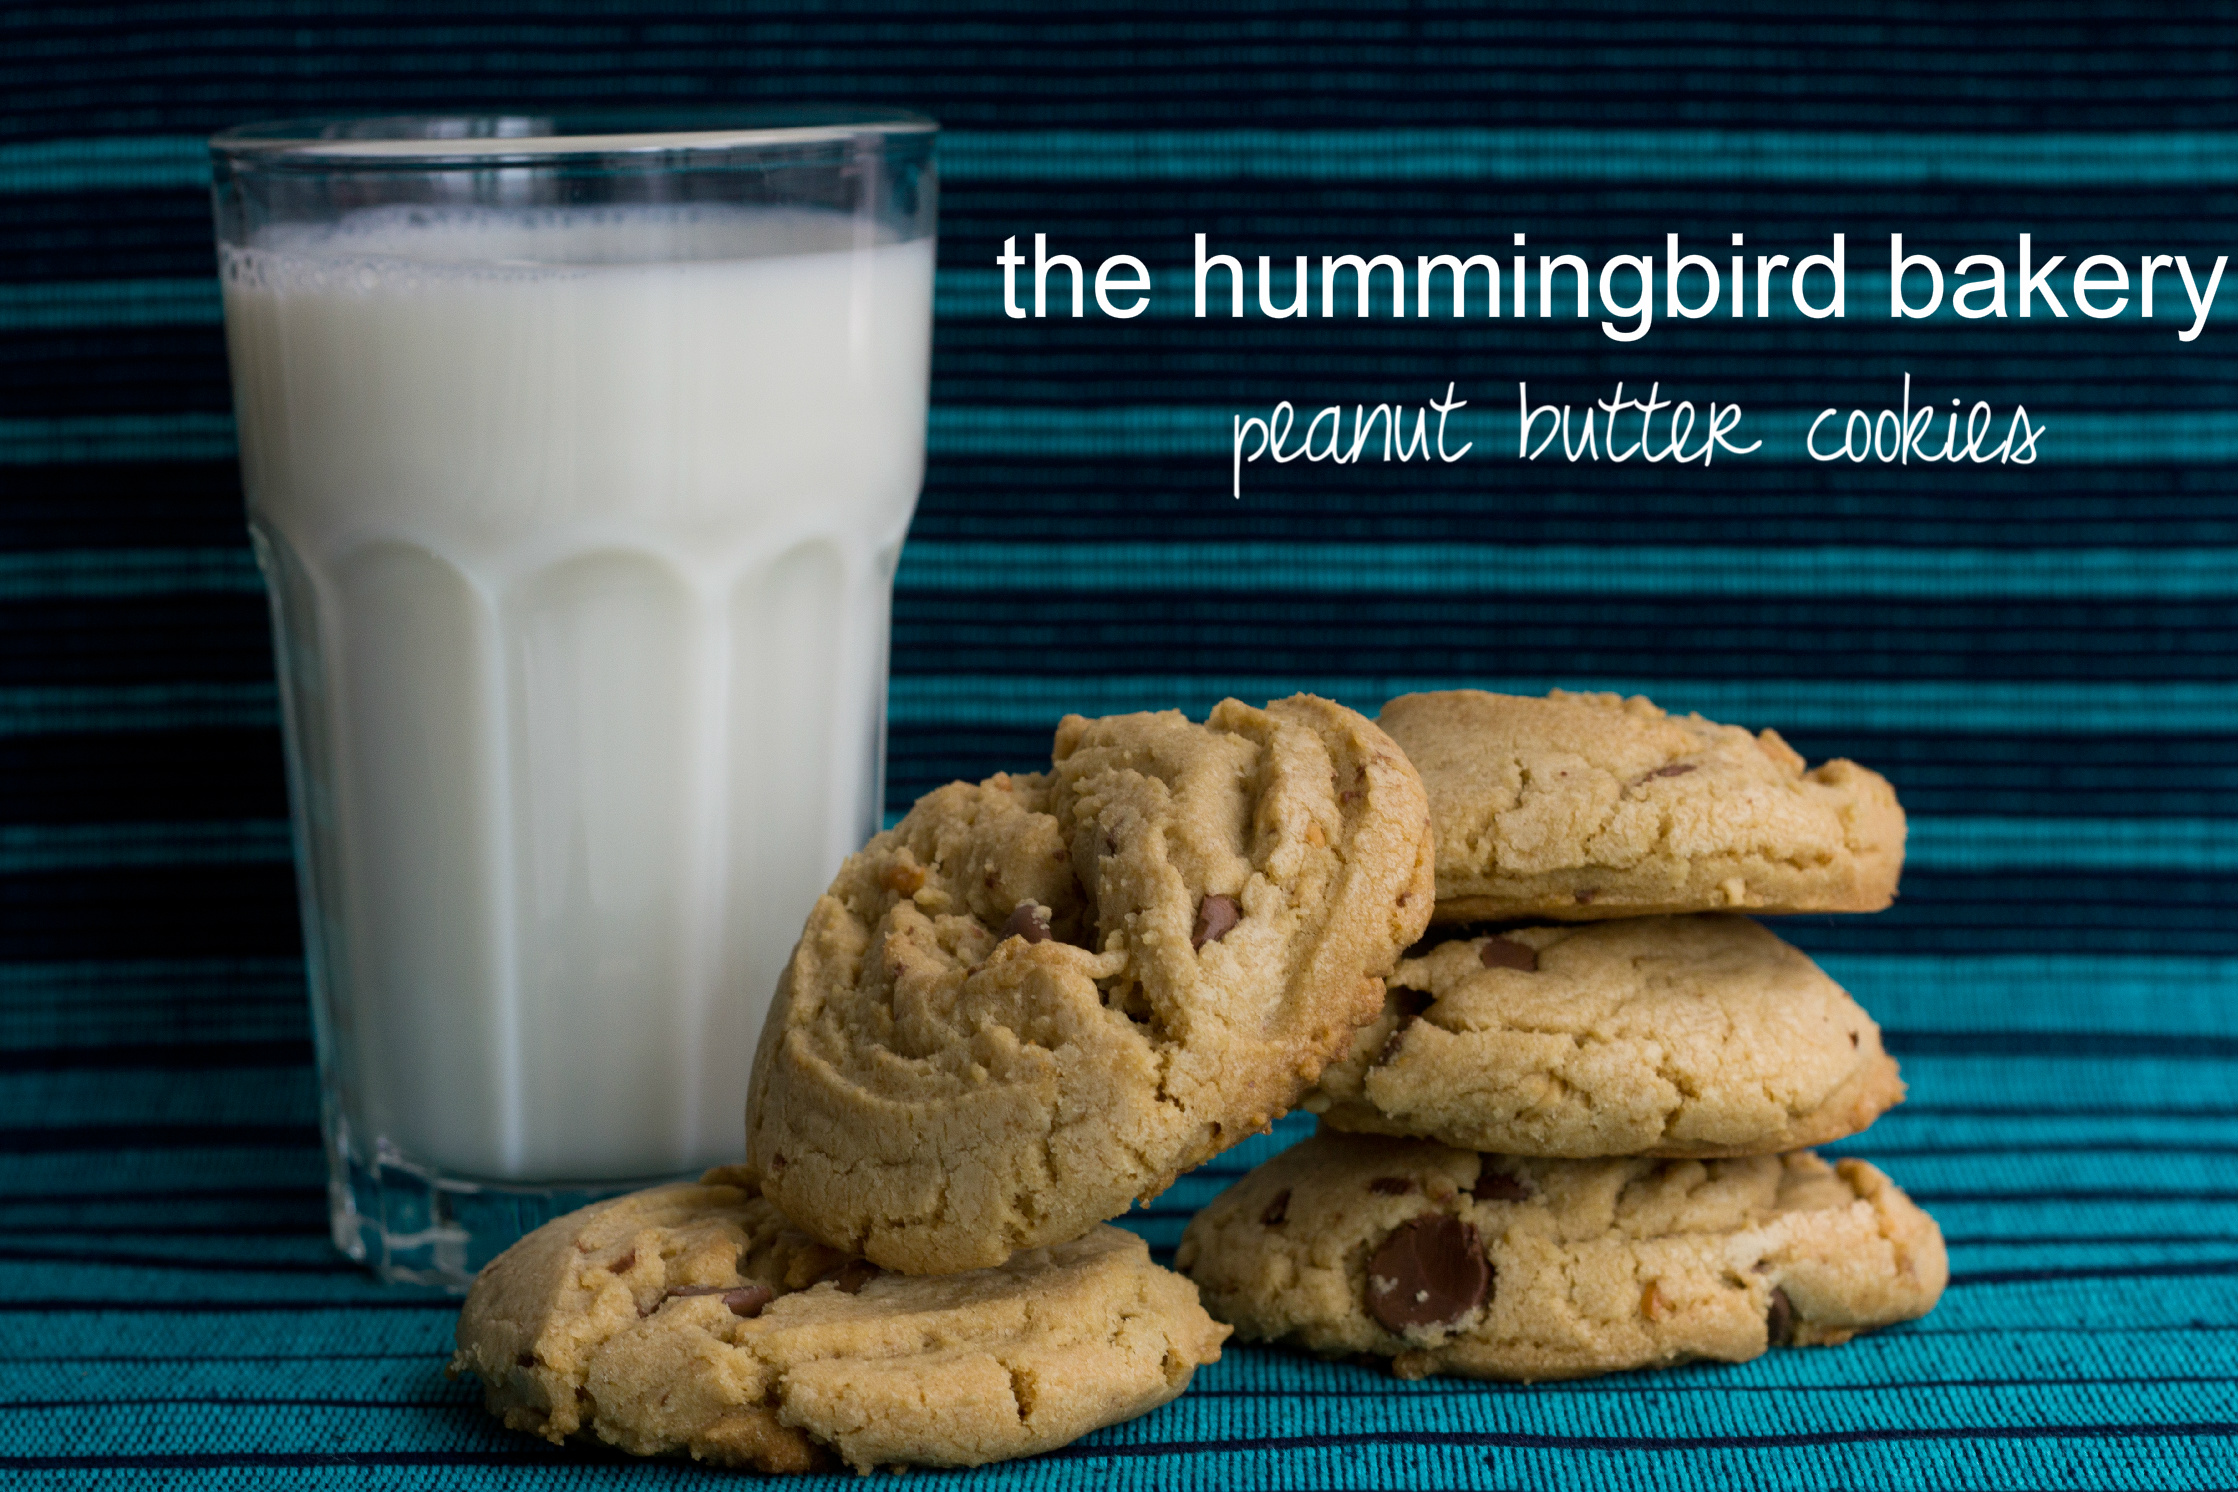 Hummingbird peanut butter cookies recipe